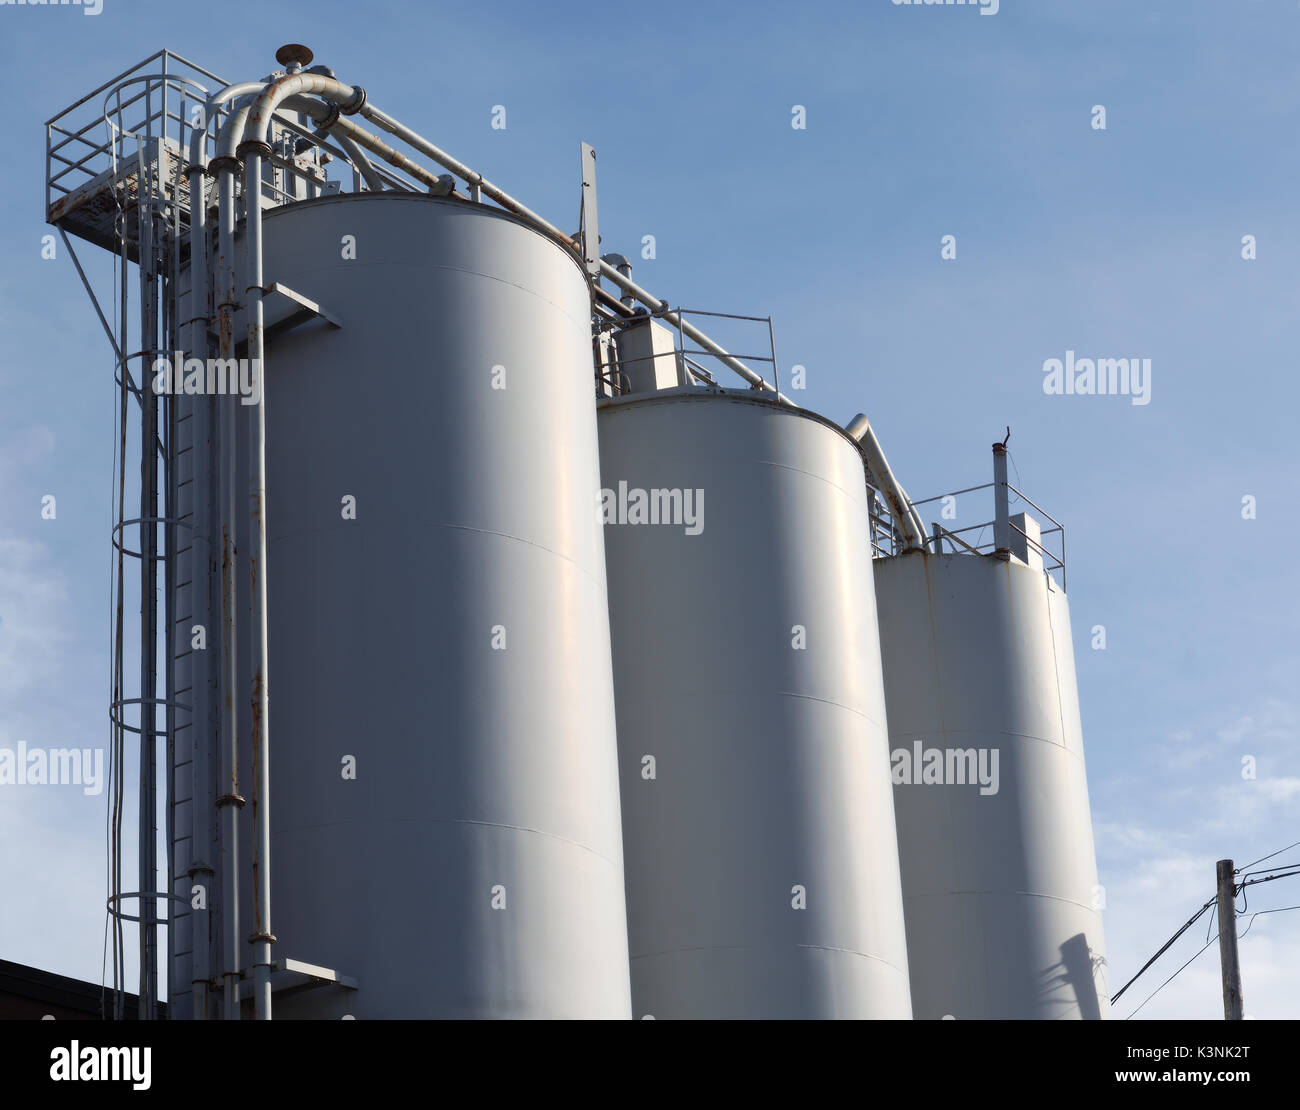 Metal Tanks Bulk Silos Industrial Factory Storage Containers